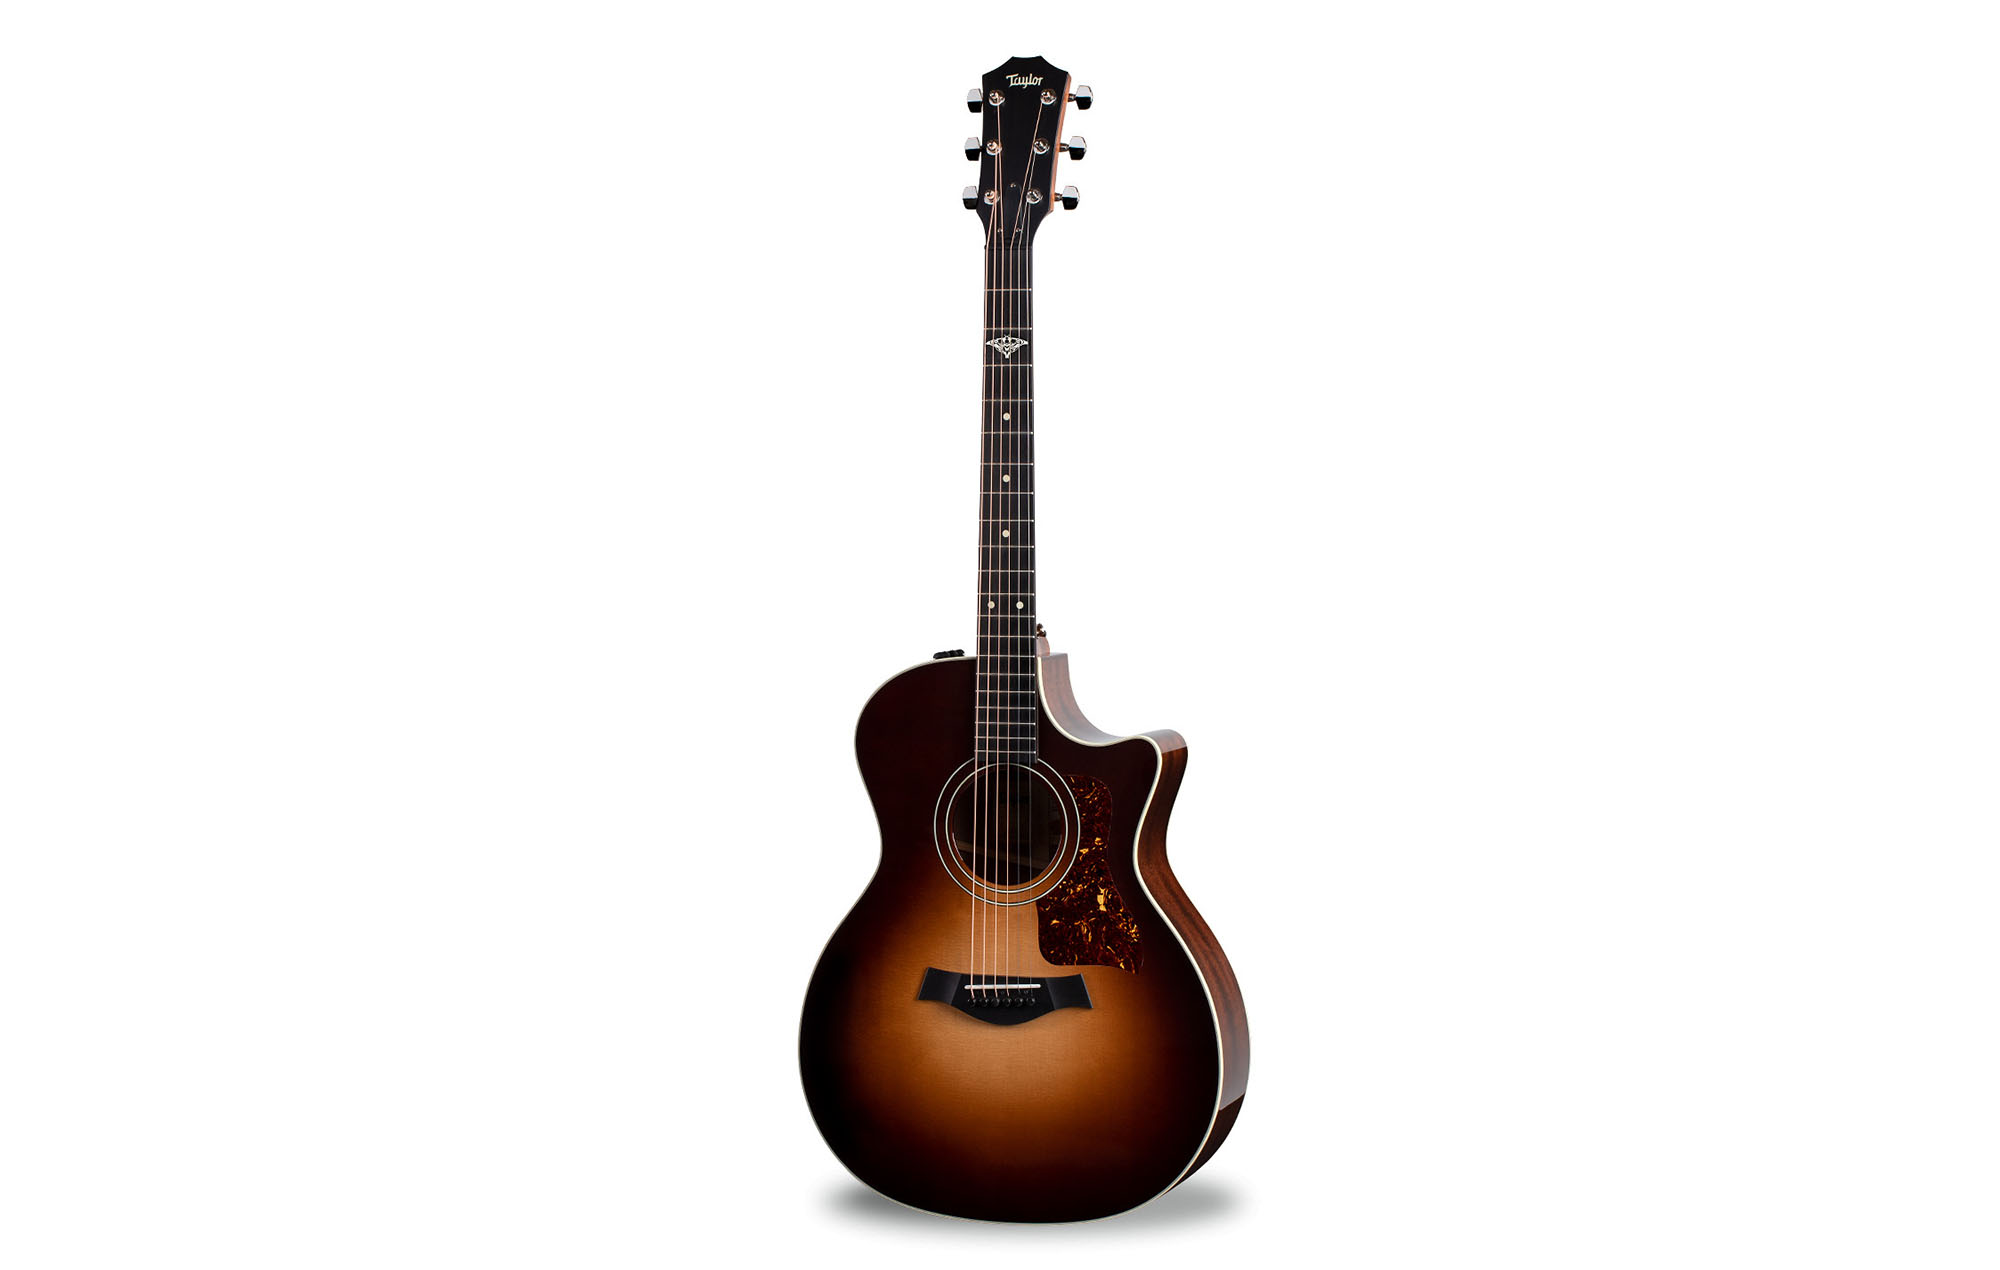 The Last Of Us Part II Replica Taylor 314ce. Image credit: Naughty Dog